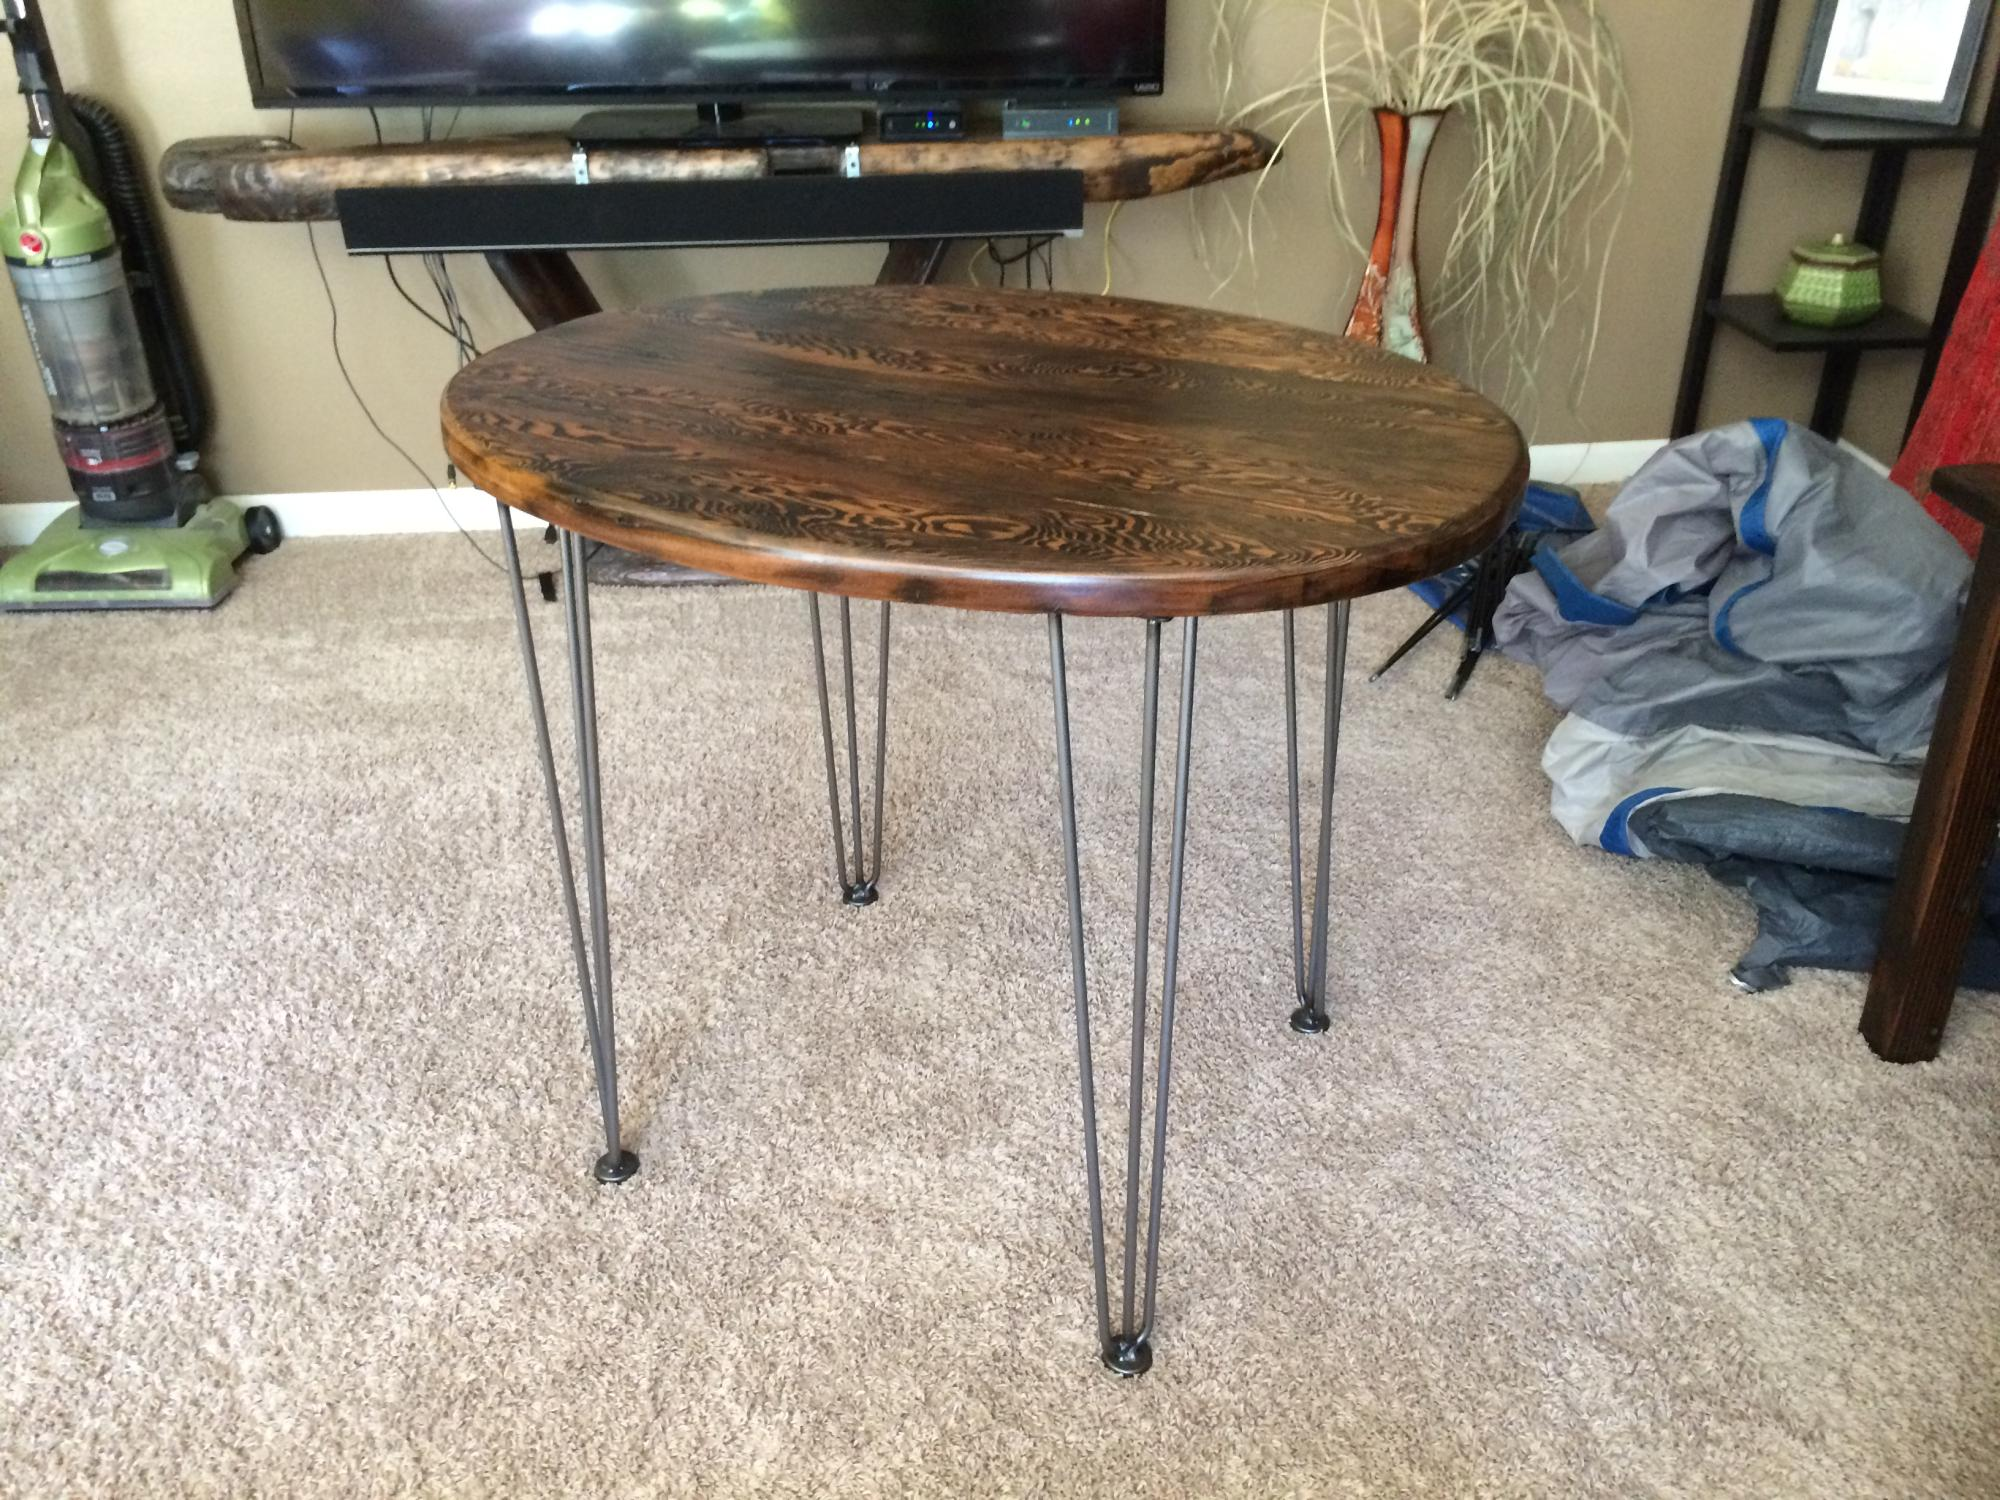 Drift lumber oval cafe table on hairpin legs $350